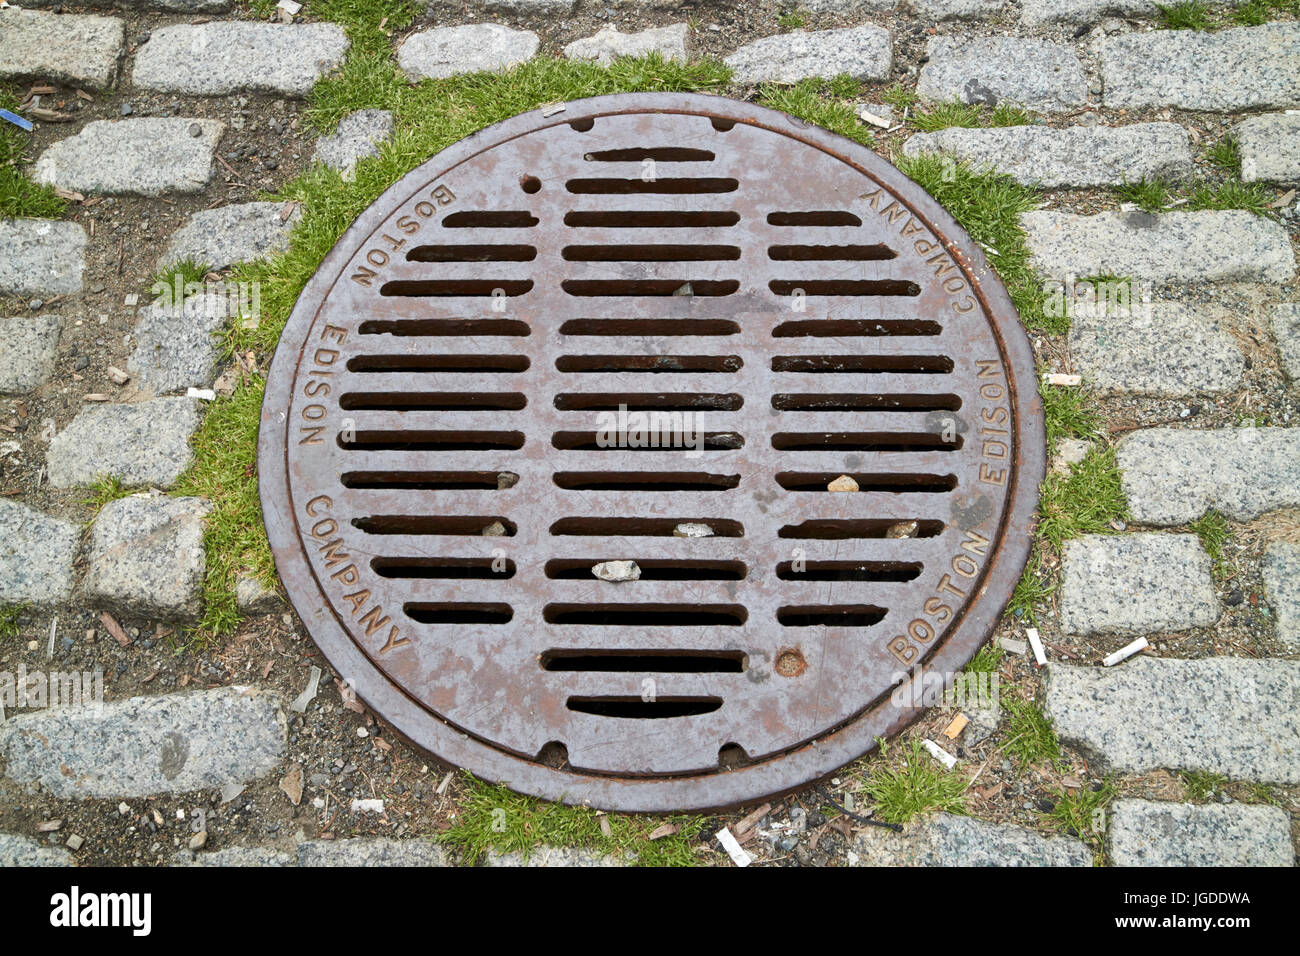 metal manhole cover for the boston edison company in cobblestoned street Boston USA - Stock Image